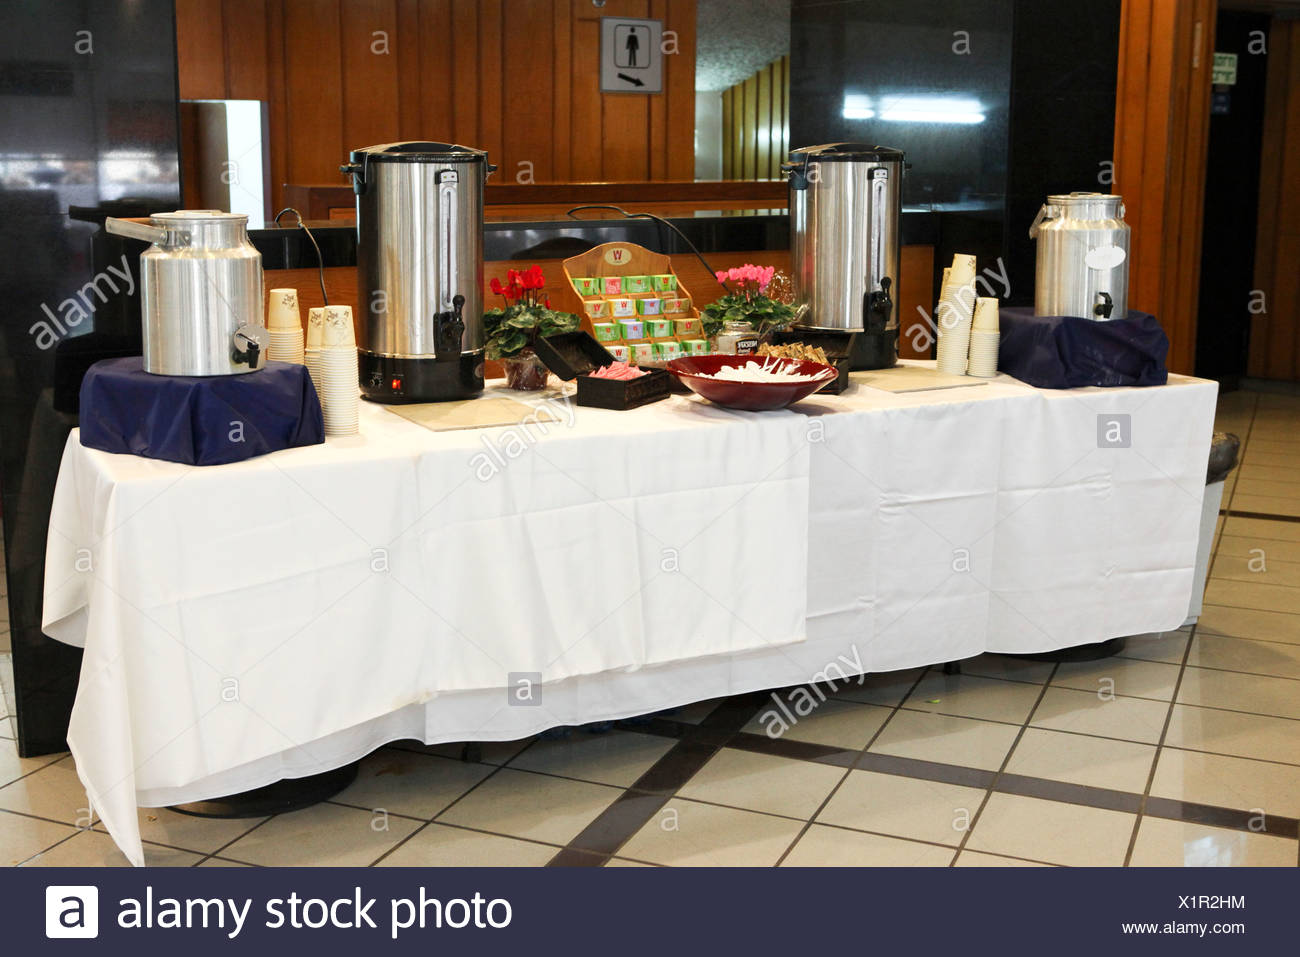 Superieur Tea And Coffee Self Service Buffet Table